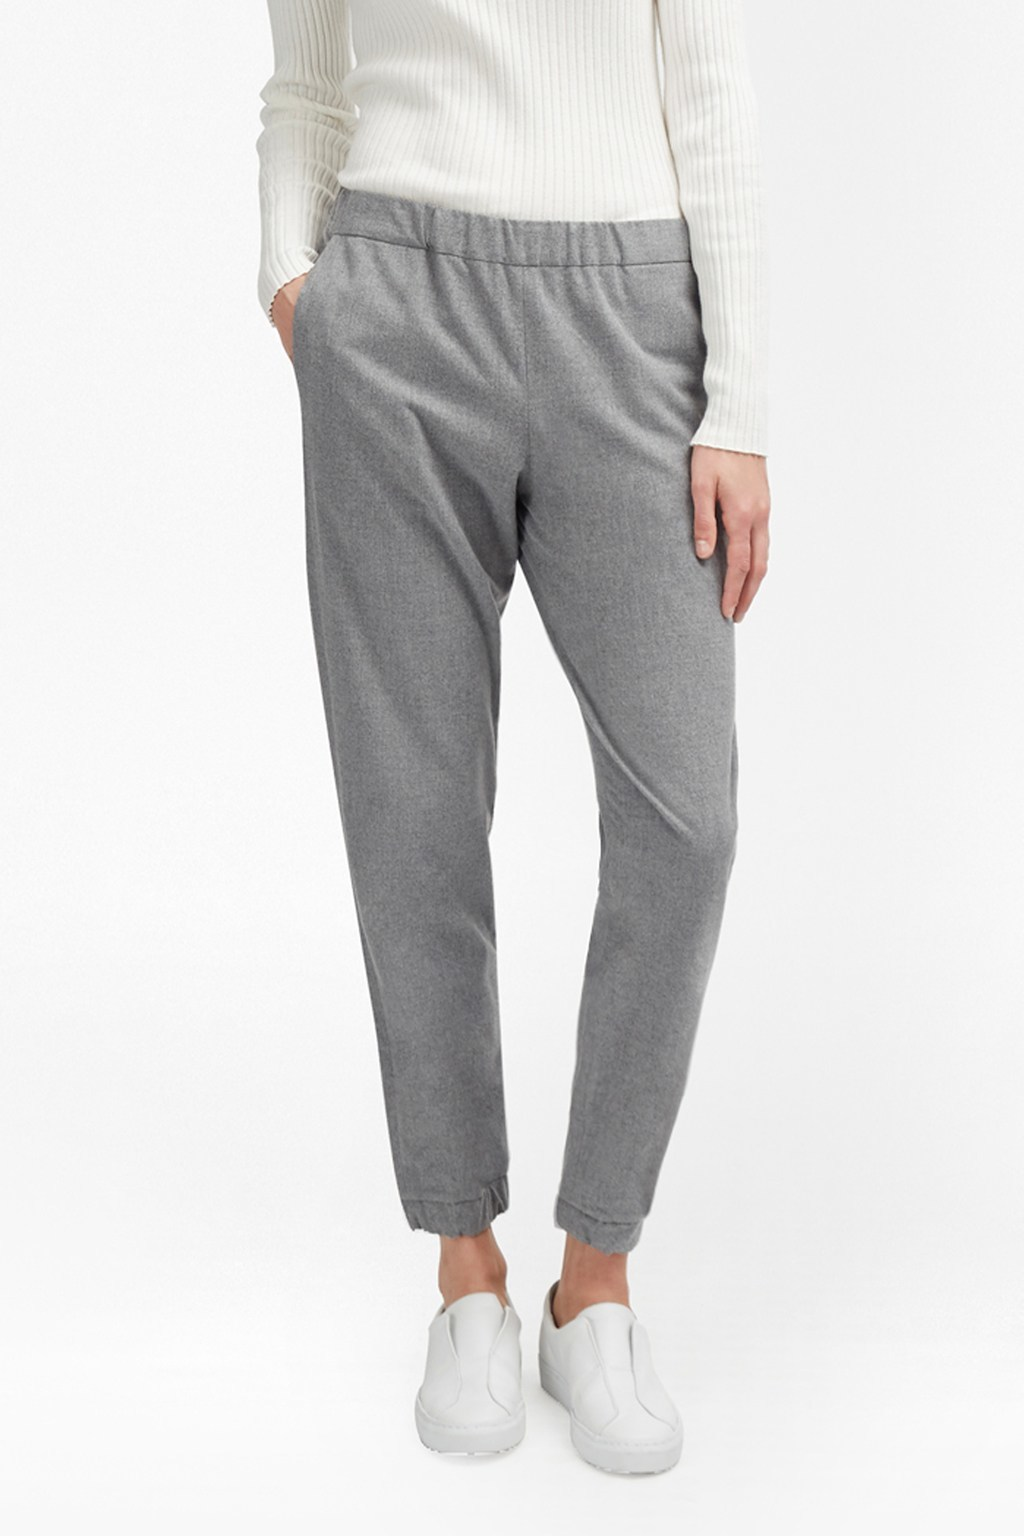 Winter Flannel Jogger Trousers Light Grey Mel - pattern: plain; waist detail: elasticated waist; style: peg leg; waist: mid/regular rise; predominant colour: mid grey; occasions: casual, creative work; length: ankle length; fibres: polyester/polyamide - stretch; fit: tapered; pattern type: fabric; texture group: woven light midweight; pattern size: standard (bottom); wardrobe: basic; season: a/w 2016